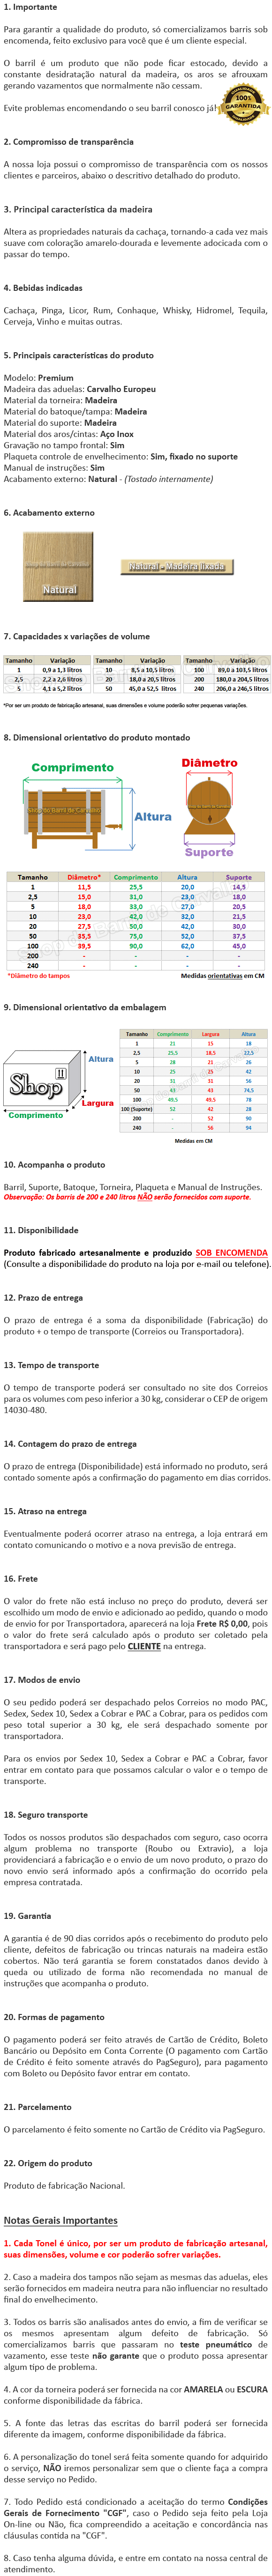 Descricao-Barril-Carvalho-Europeu-Premium-Natural.png